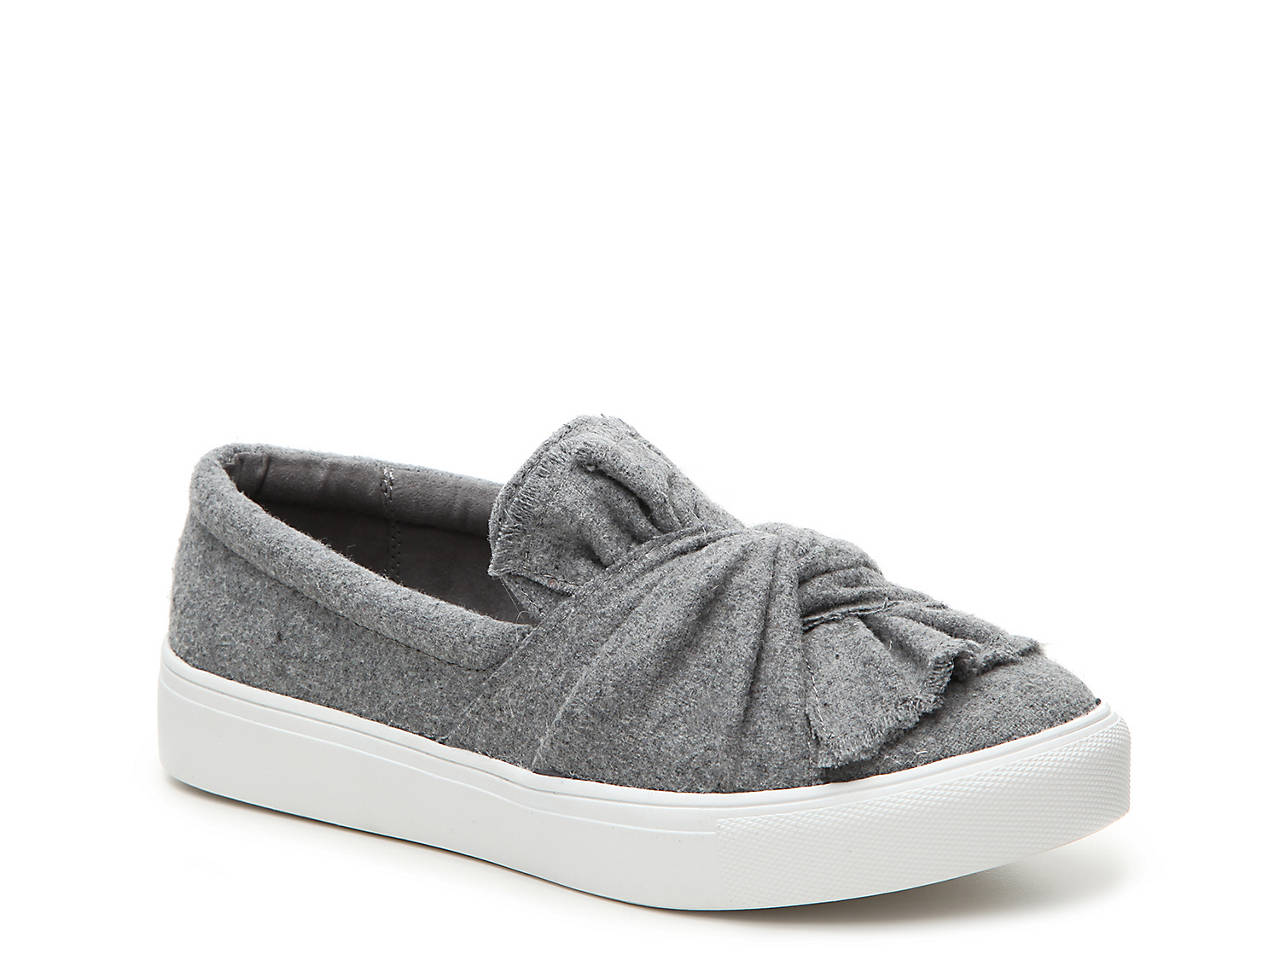 be61ae10fcd1a Mia Zoe Bow Slip-On Sneaker Women's Shoes | DSW